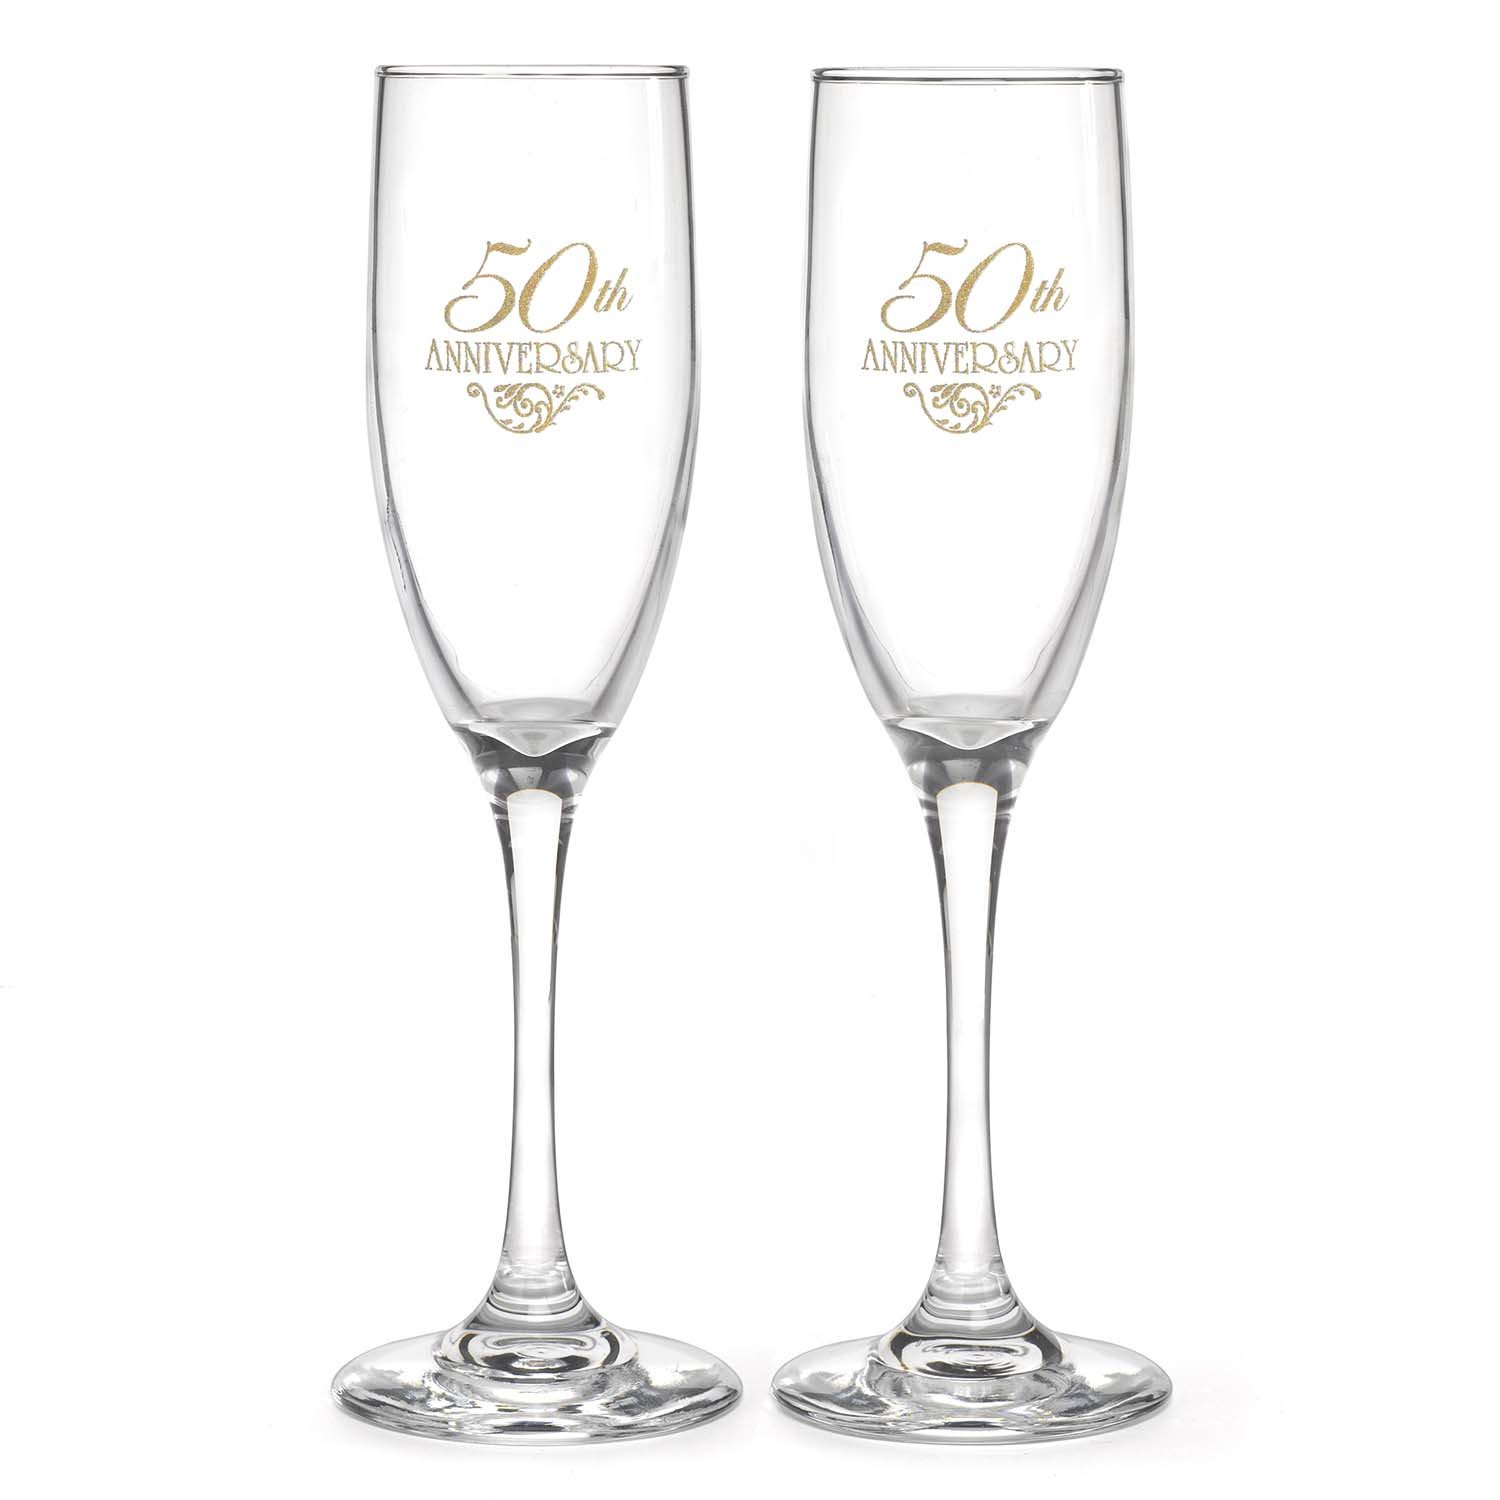 Hortense B. Hewitt Wedding Accessories 50th Anniversary Champagne Toasting Flutes, Set of 2 Sourced Wit 30117